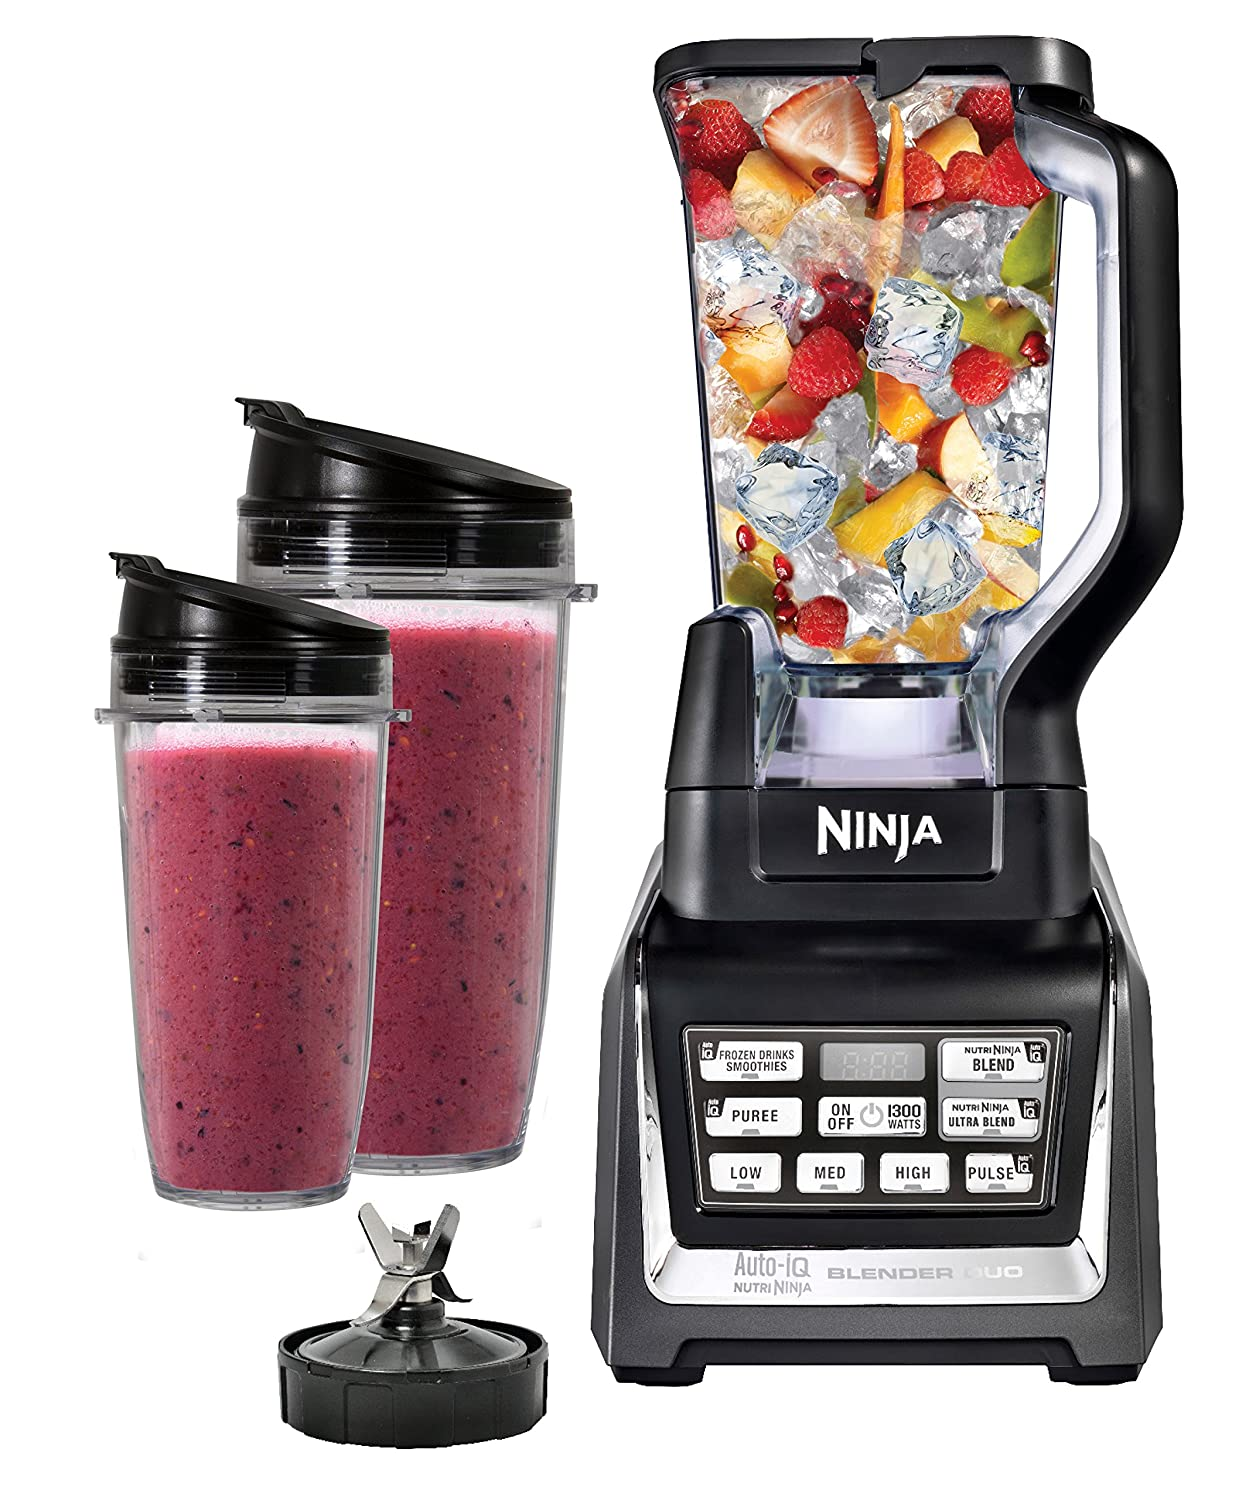 This is an extremely high quality smoothie blender